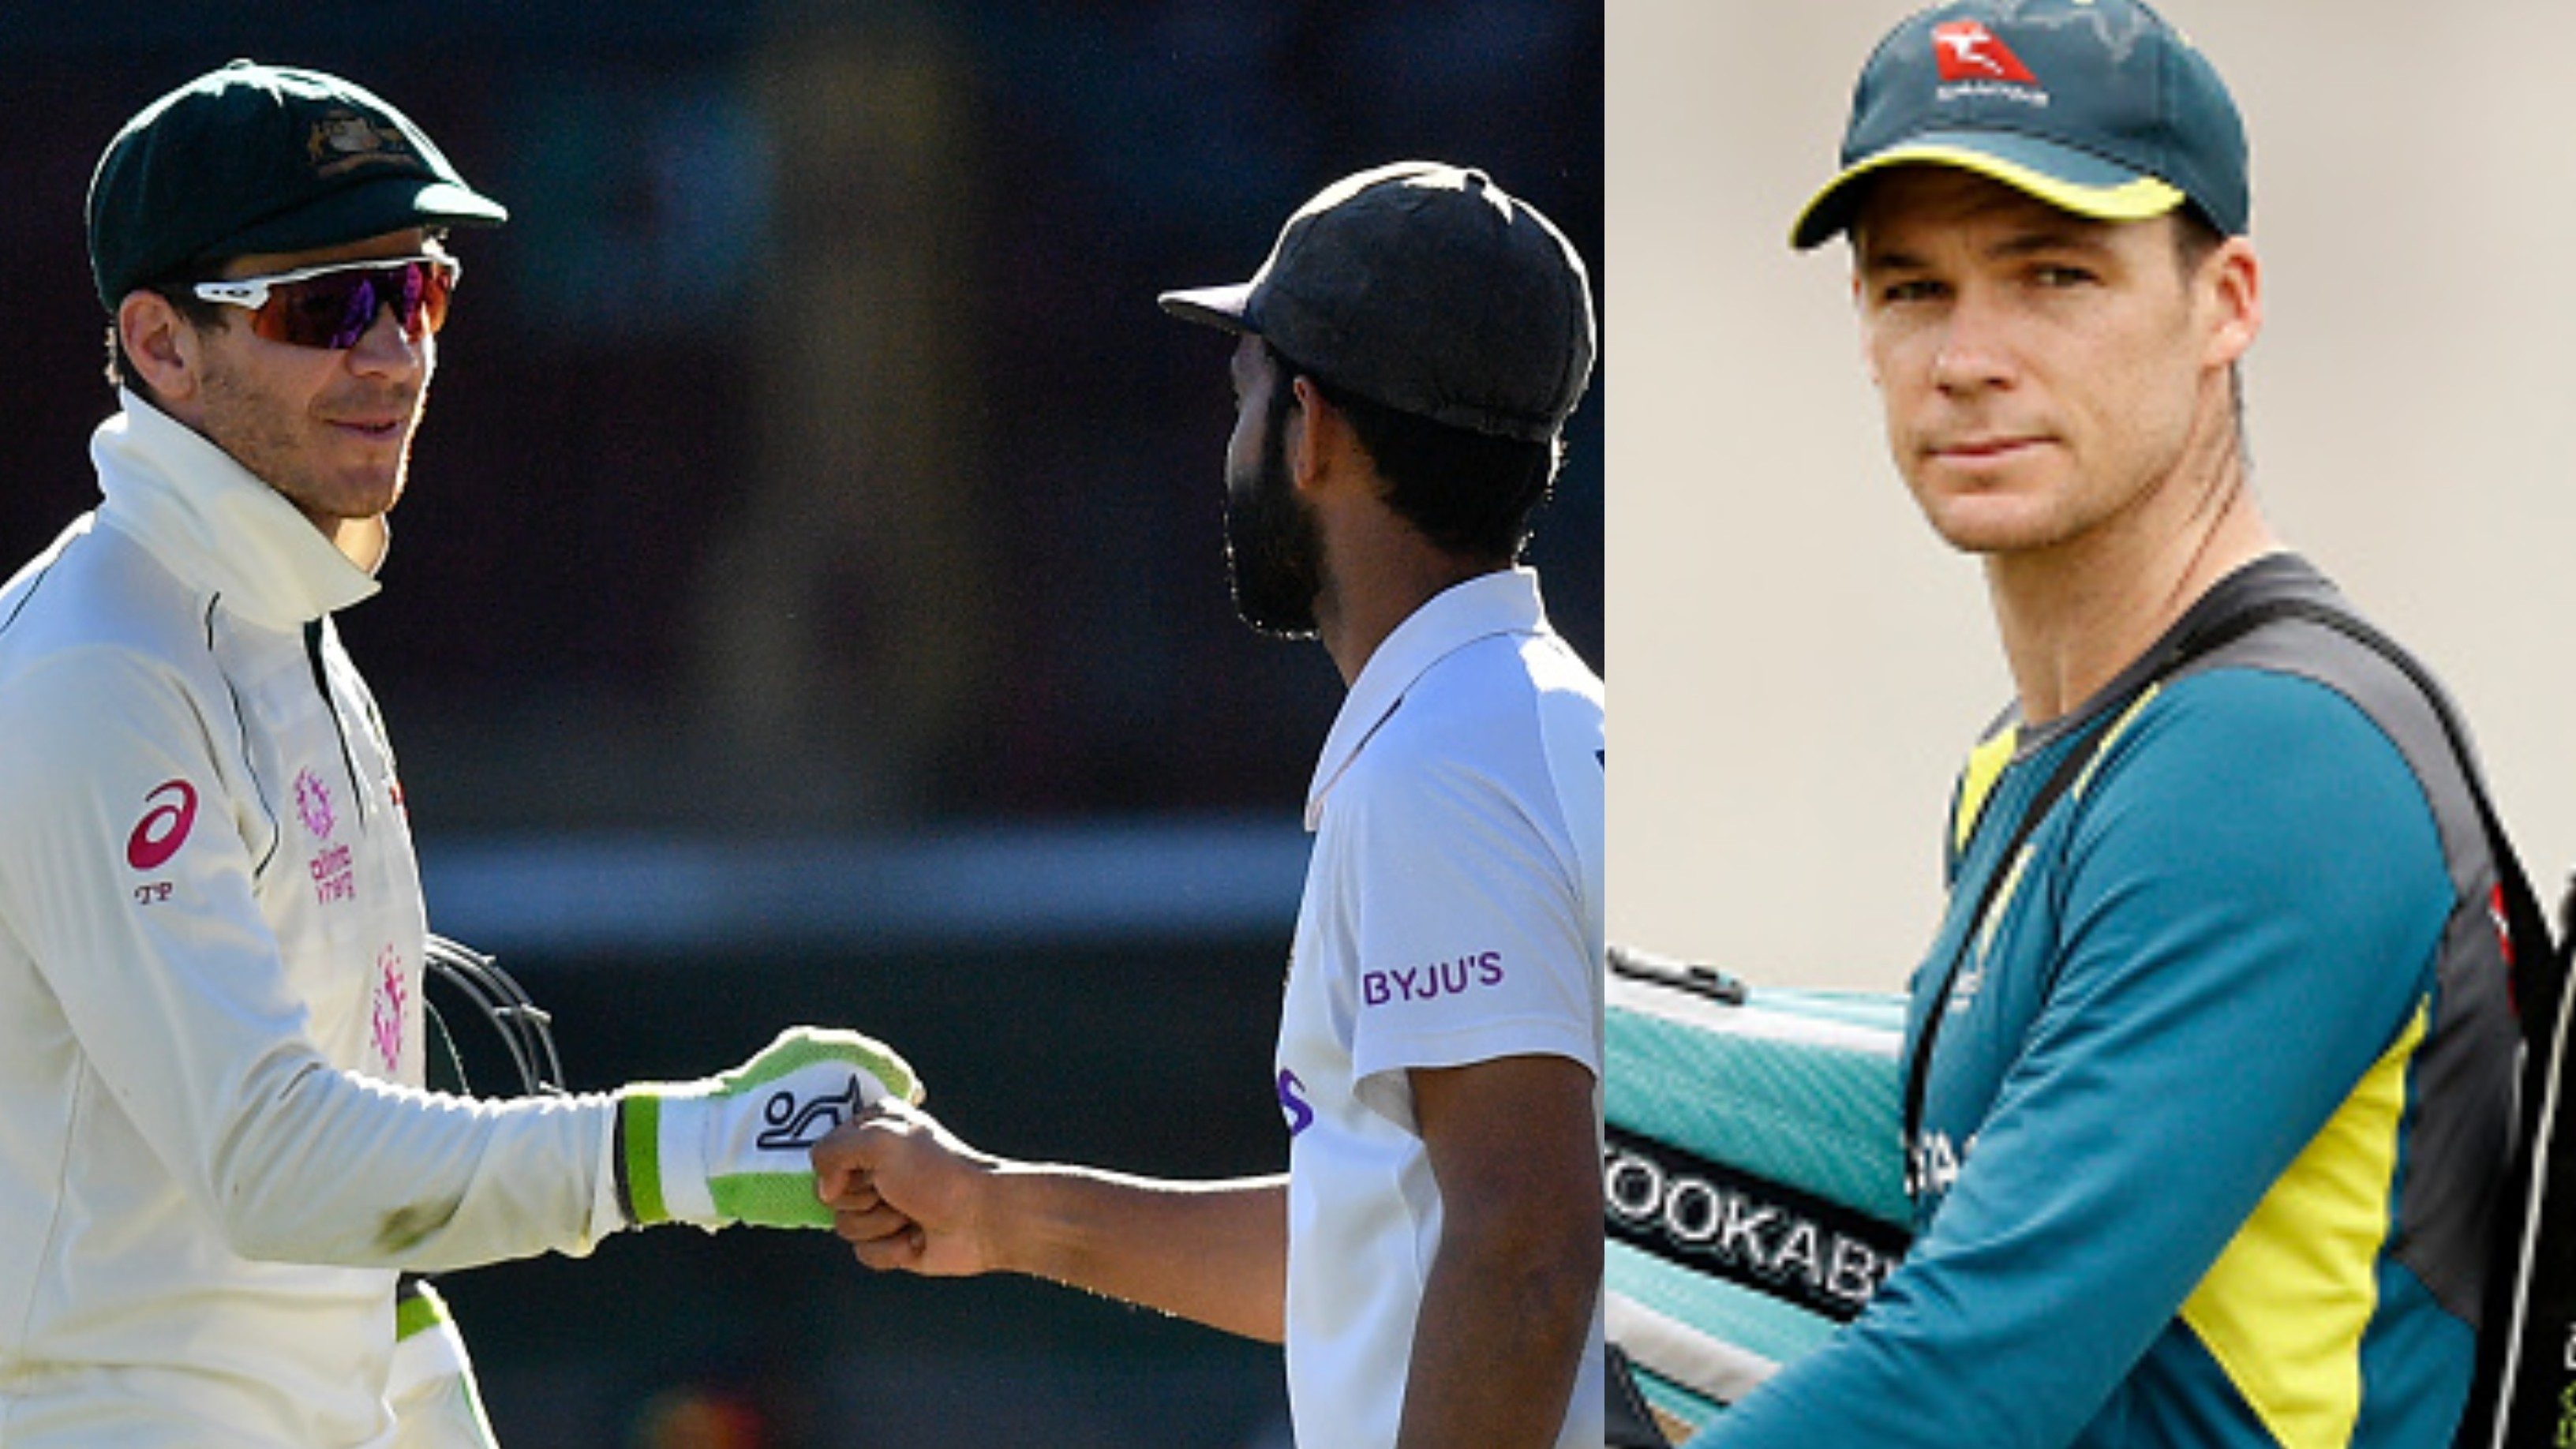 AUS v IND 2020-21: Peter Handscomb calls Tim Paine's criticism for Test series loss an